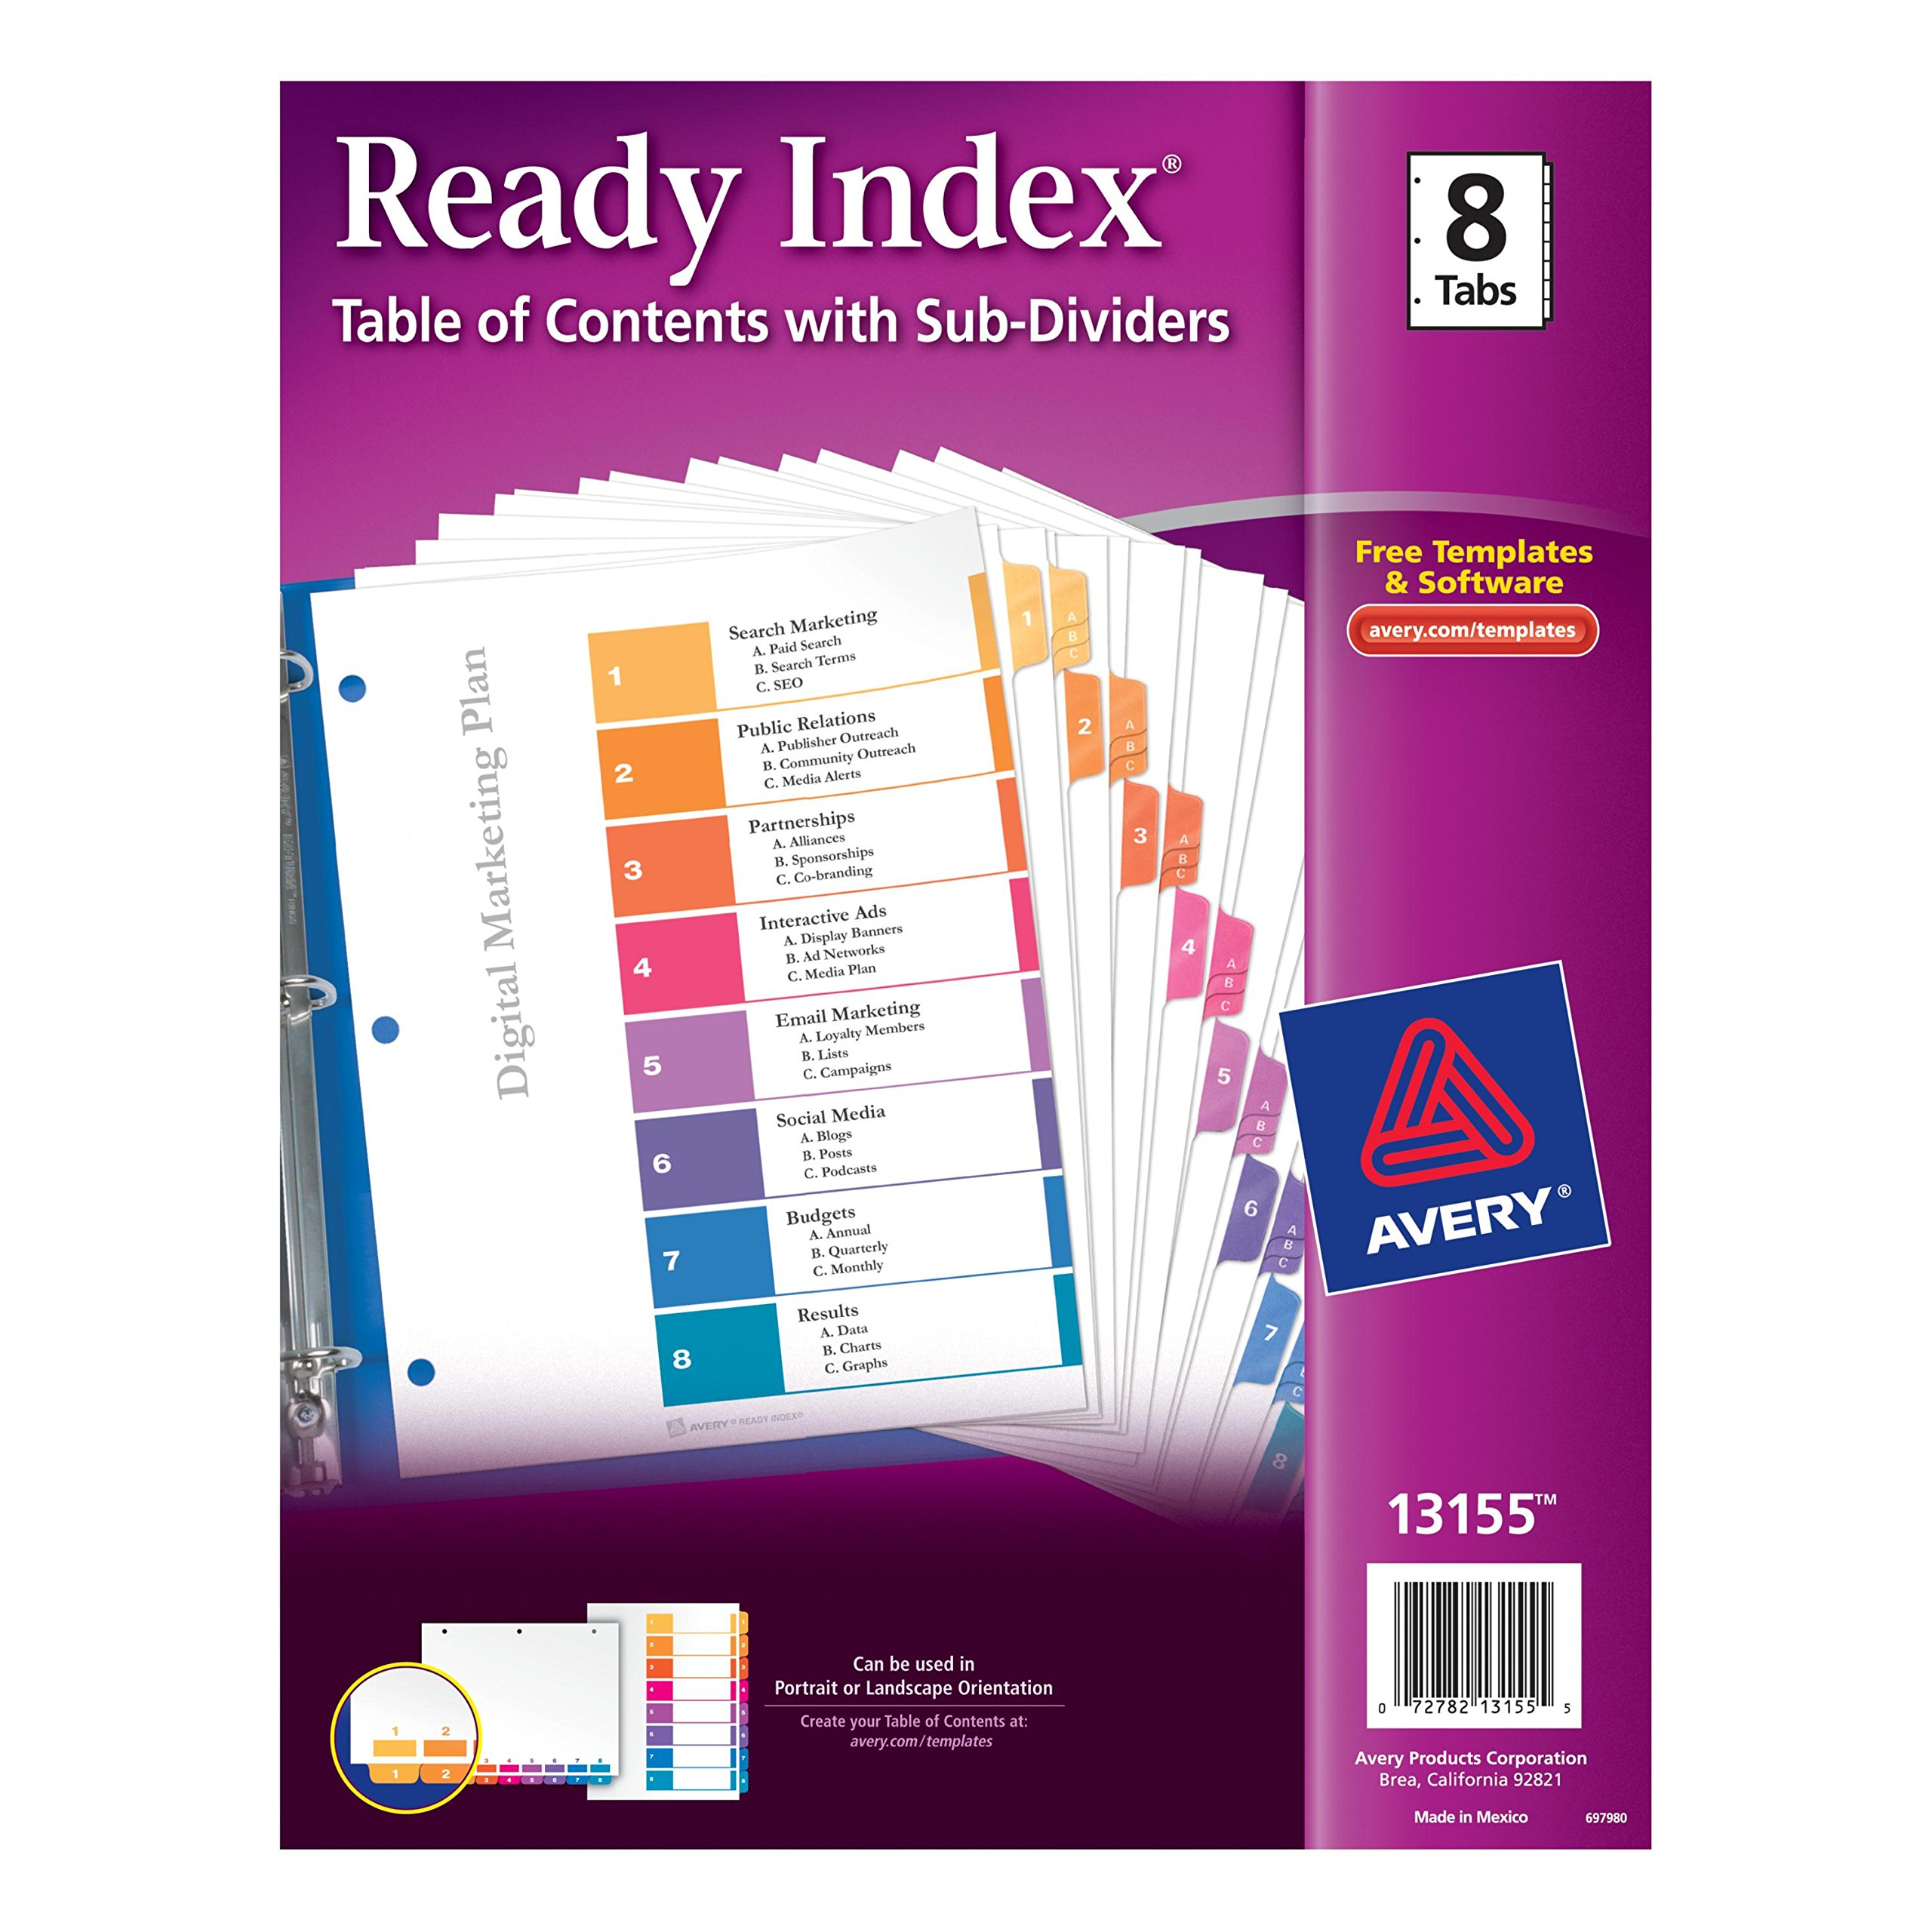 Avery Ready Index Table of Contents Dividers with Sub-Dividers, 8-Tabs per Set with A, B, and C Subsections for Each Numerical Tab (13155) by Avery